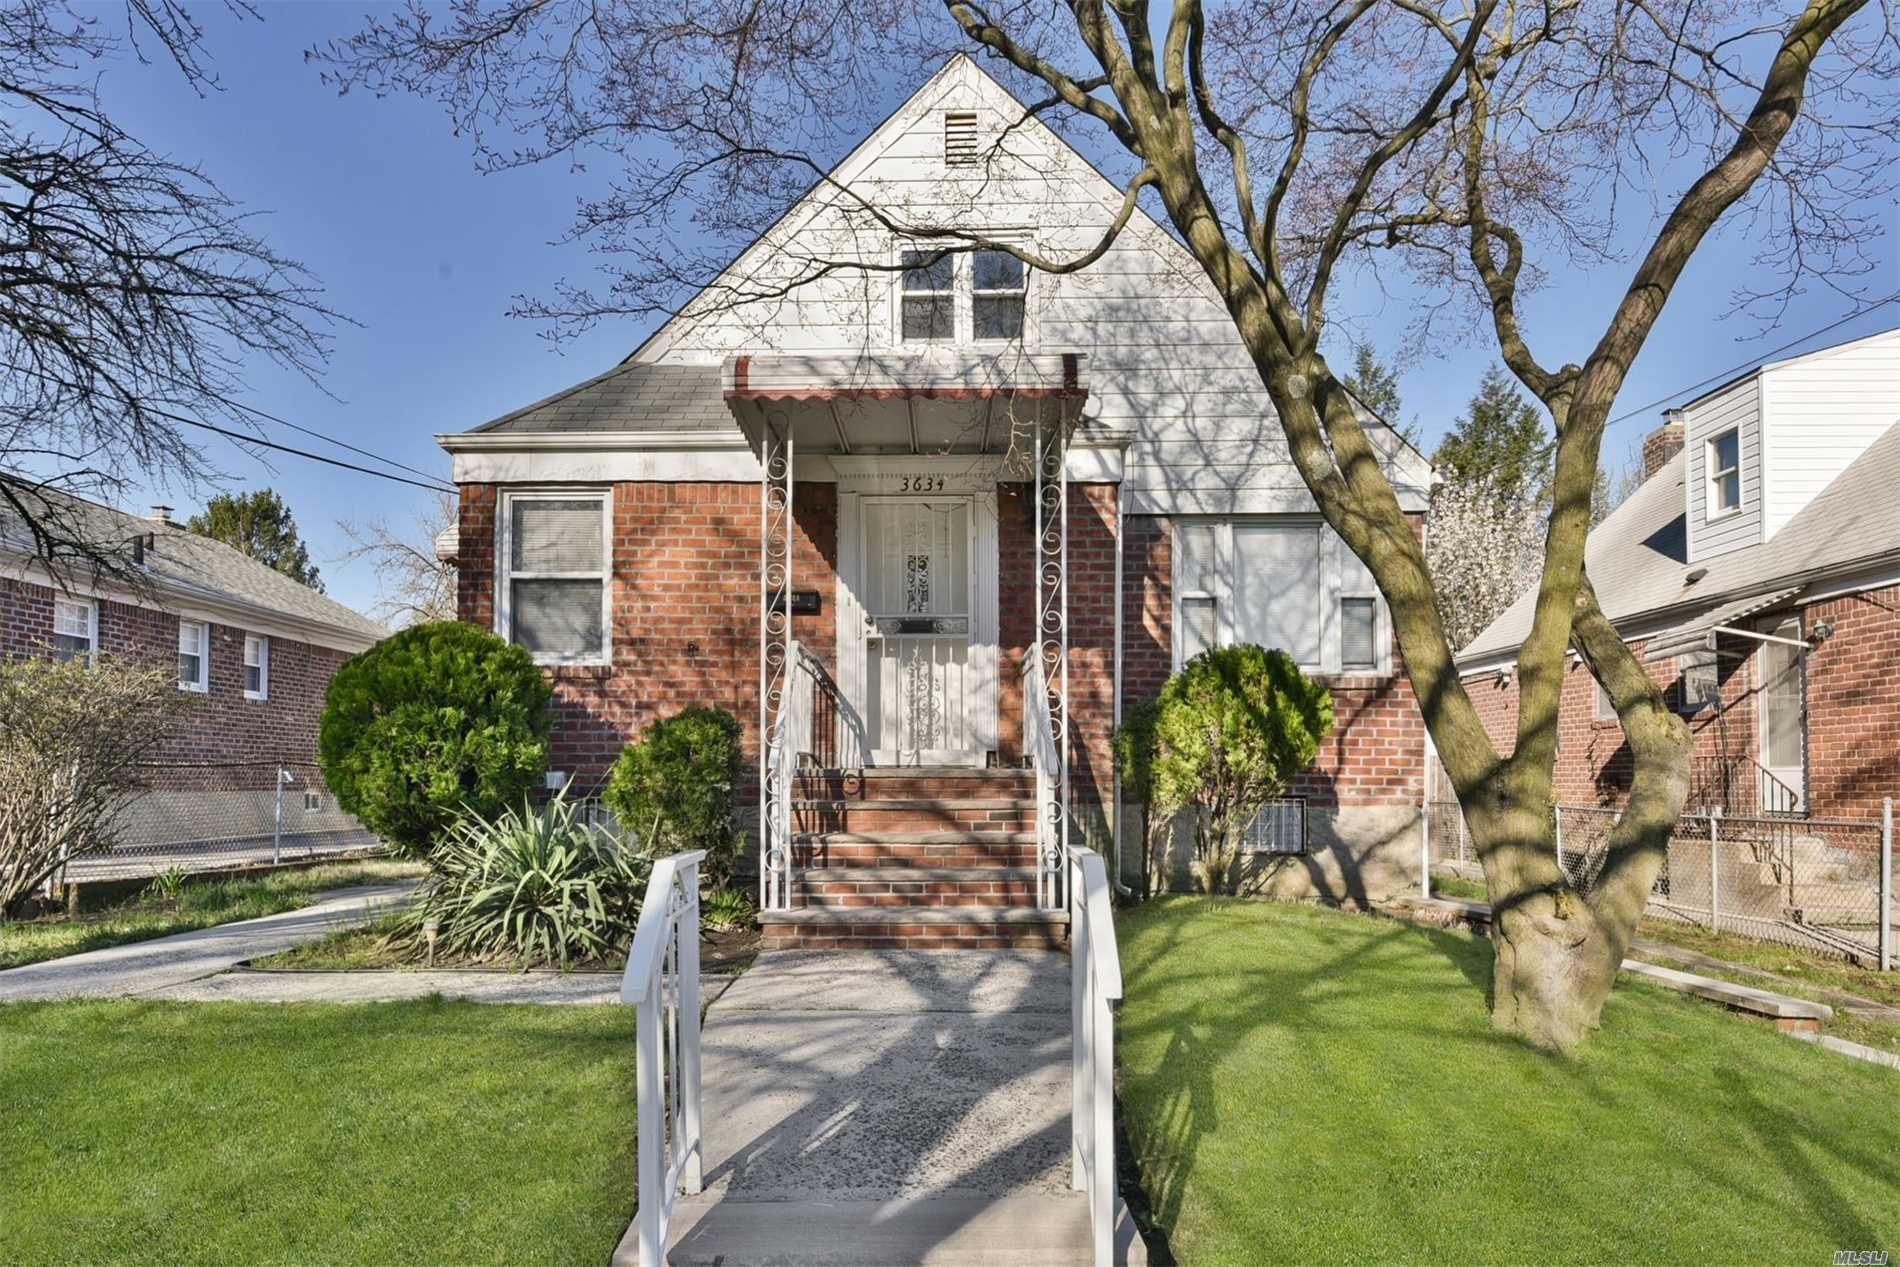 4Br, 3 full bath cape in desirable SD #26. Home features newly refinished HW floors, Full Finished basement with bathroom and separate entrance. Close to all.